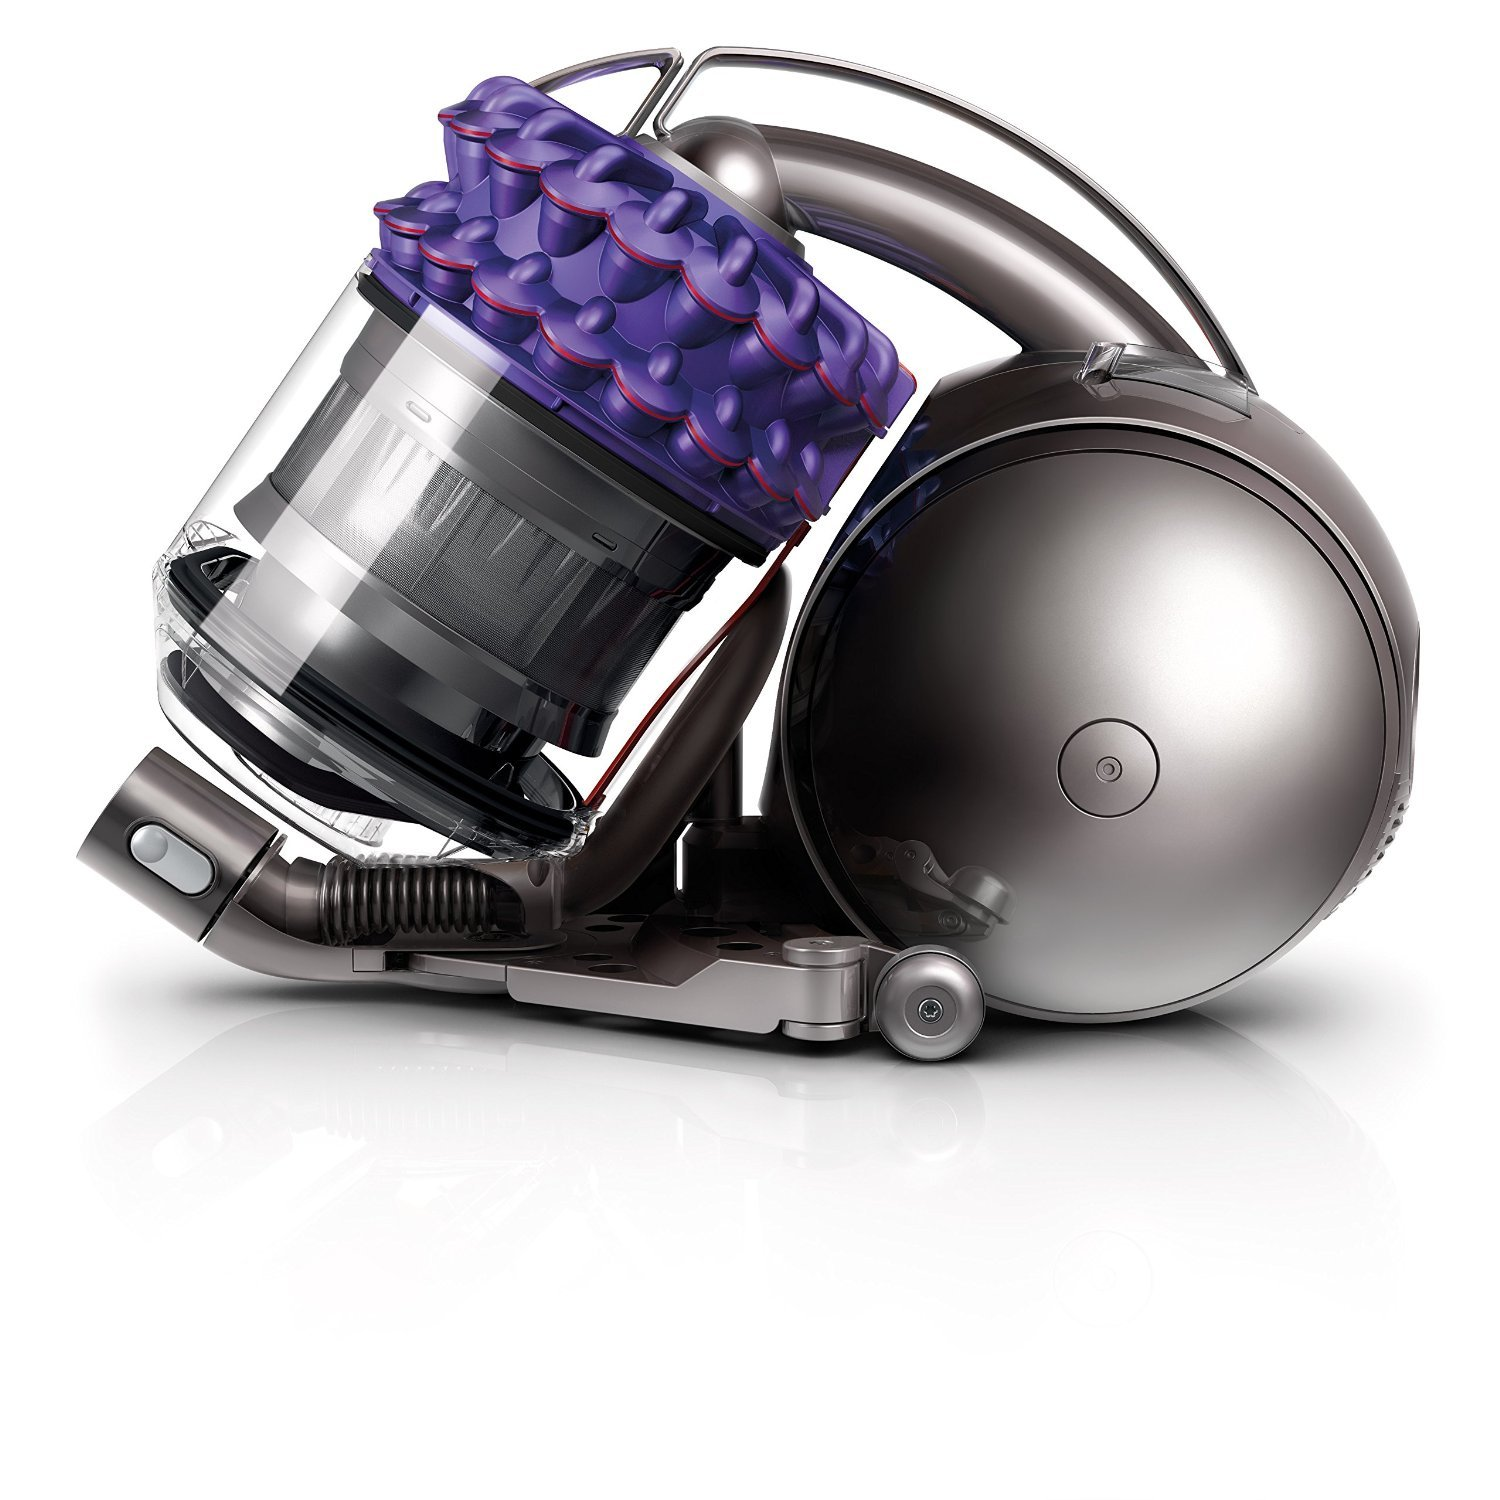 Dyson CY18 Cinetic Animal Canister Vacuum, Purple/Iron (Certified Refurbished) by Dyson (Image #3)